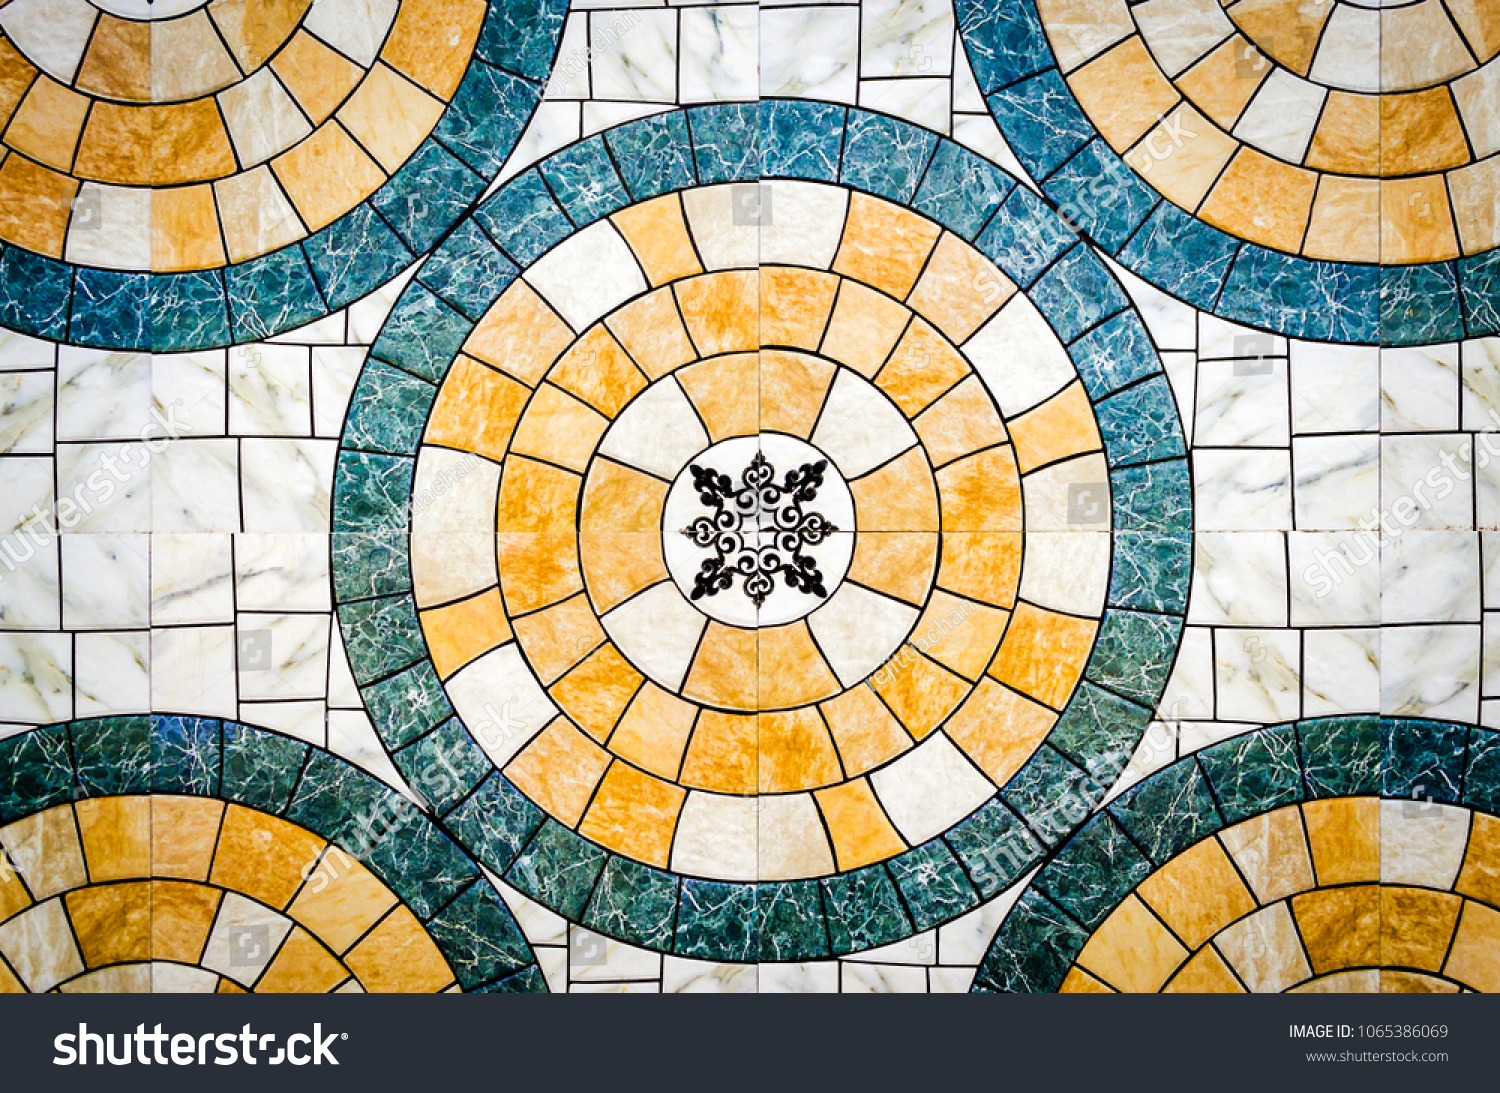 Arabic style round tile pattern. Abstract background.